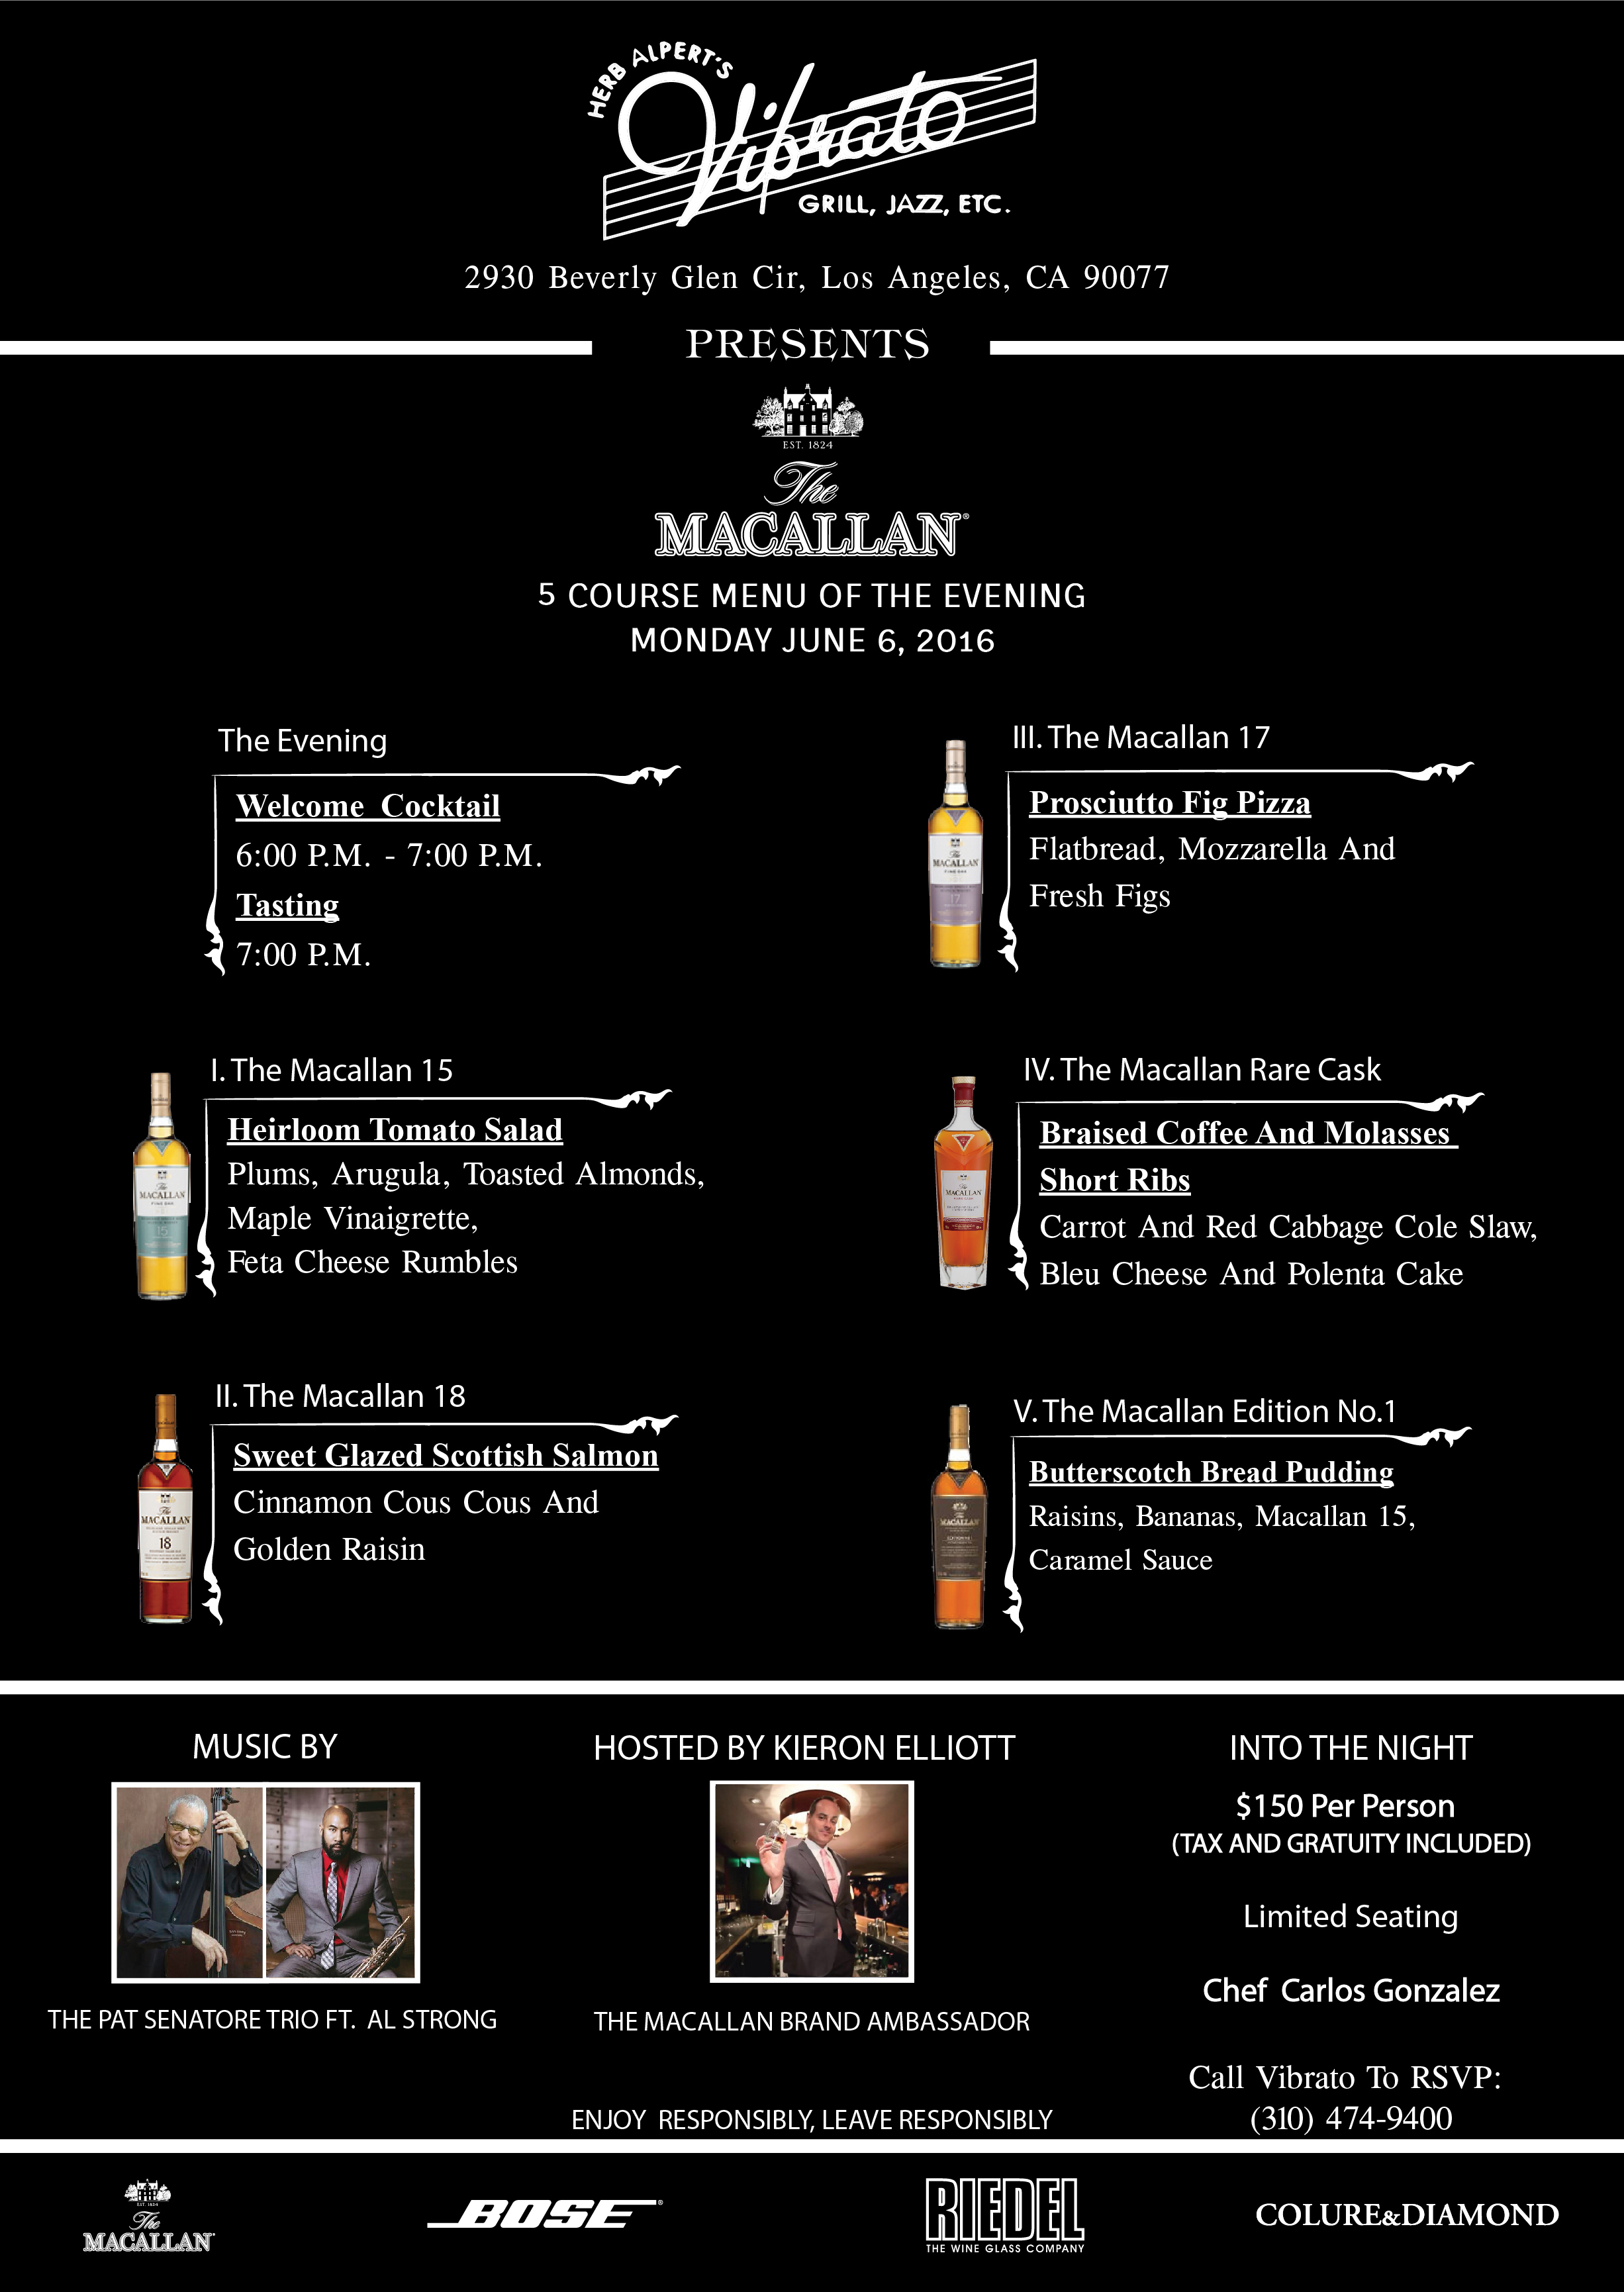 The Macallan 5 Course Menu of The Evening 2016  By Colure and Diamond